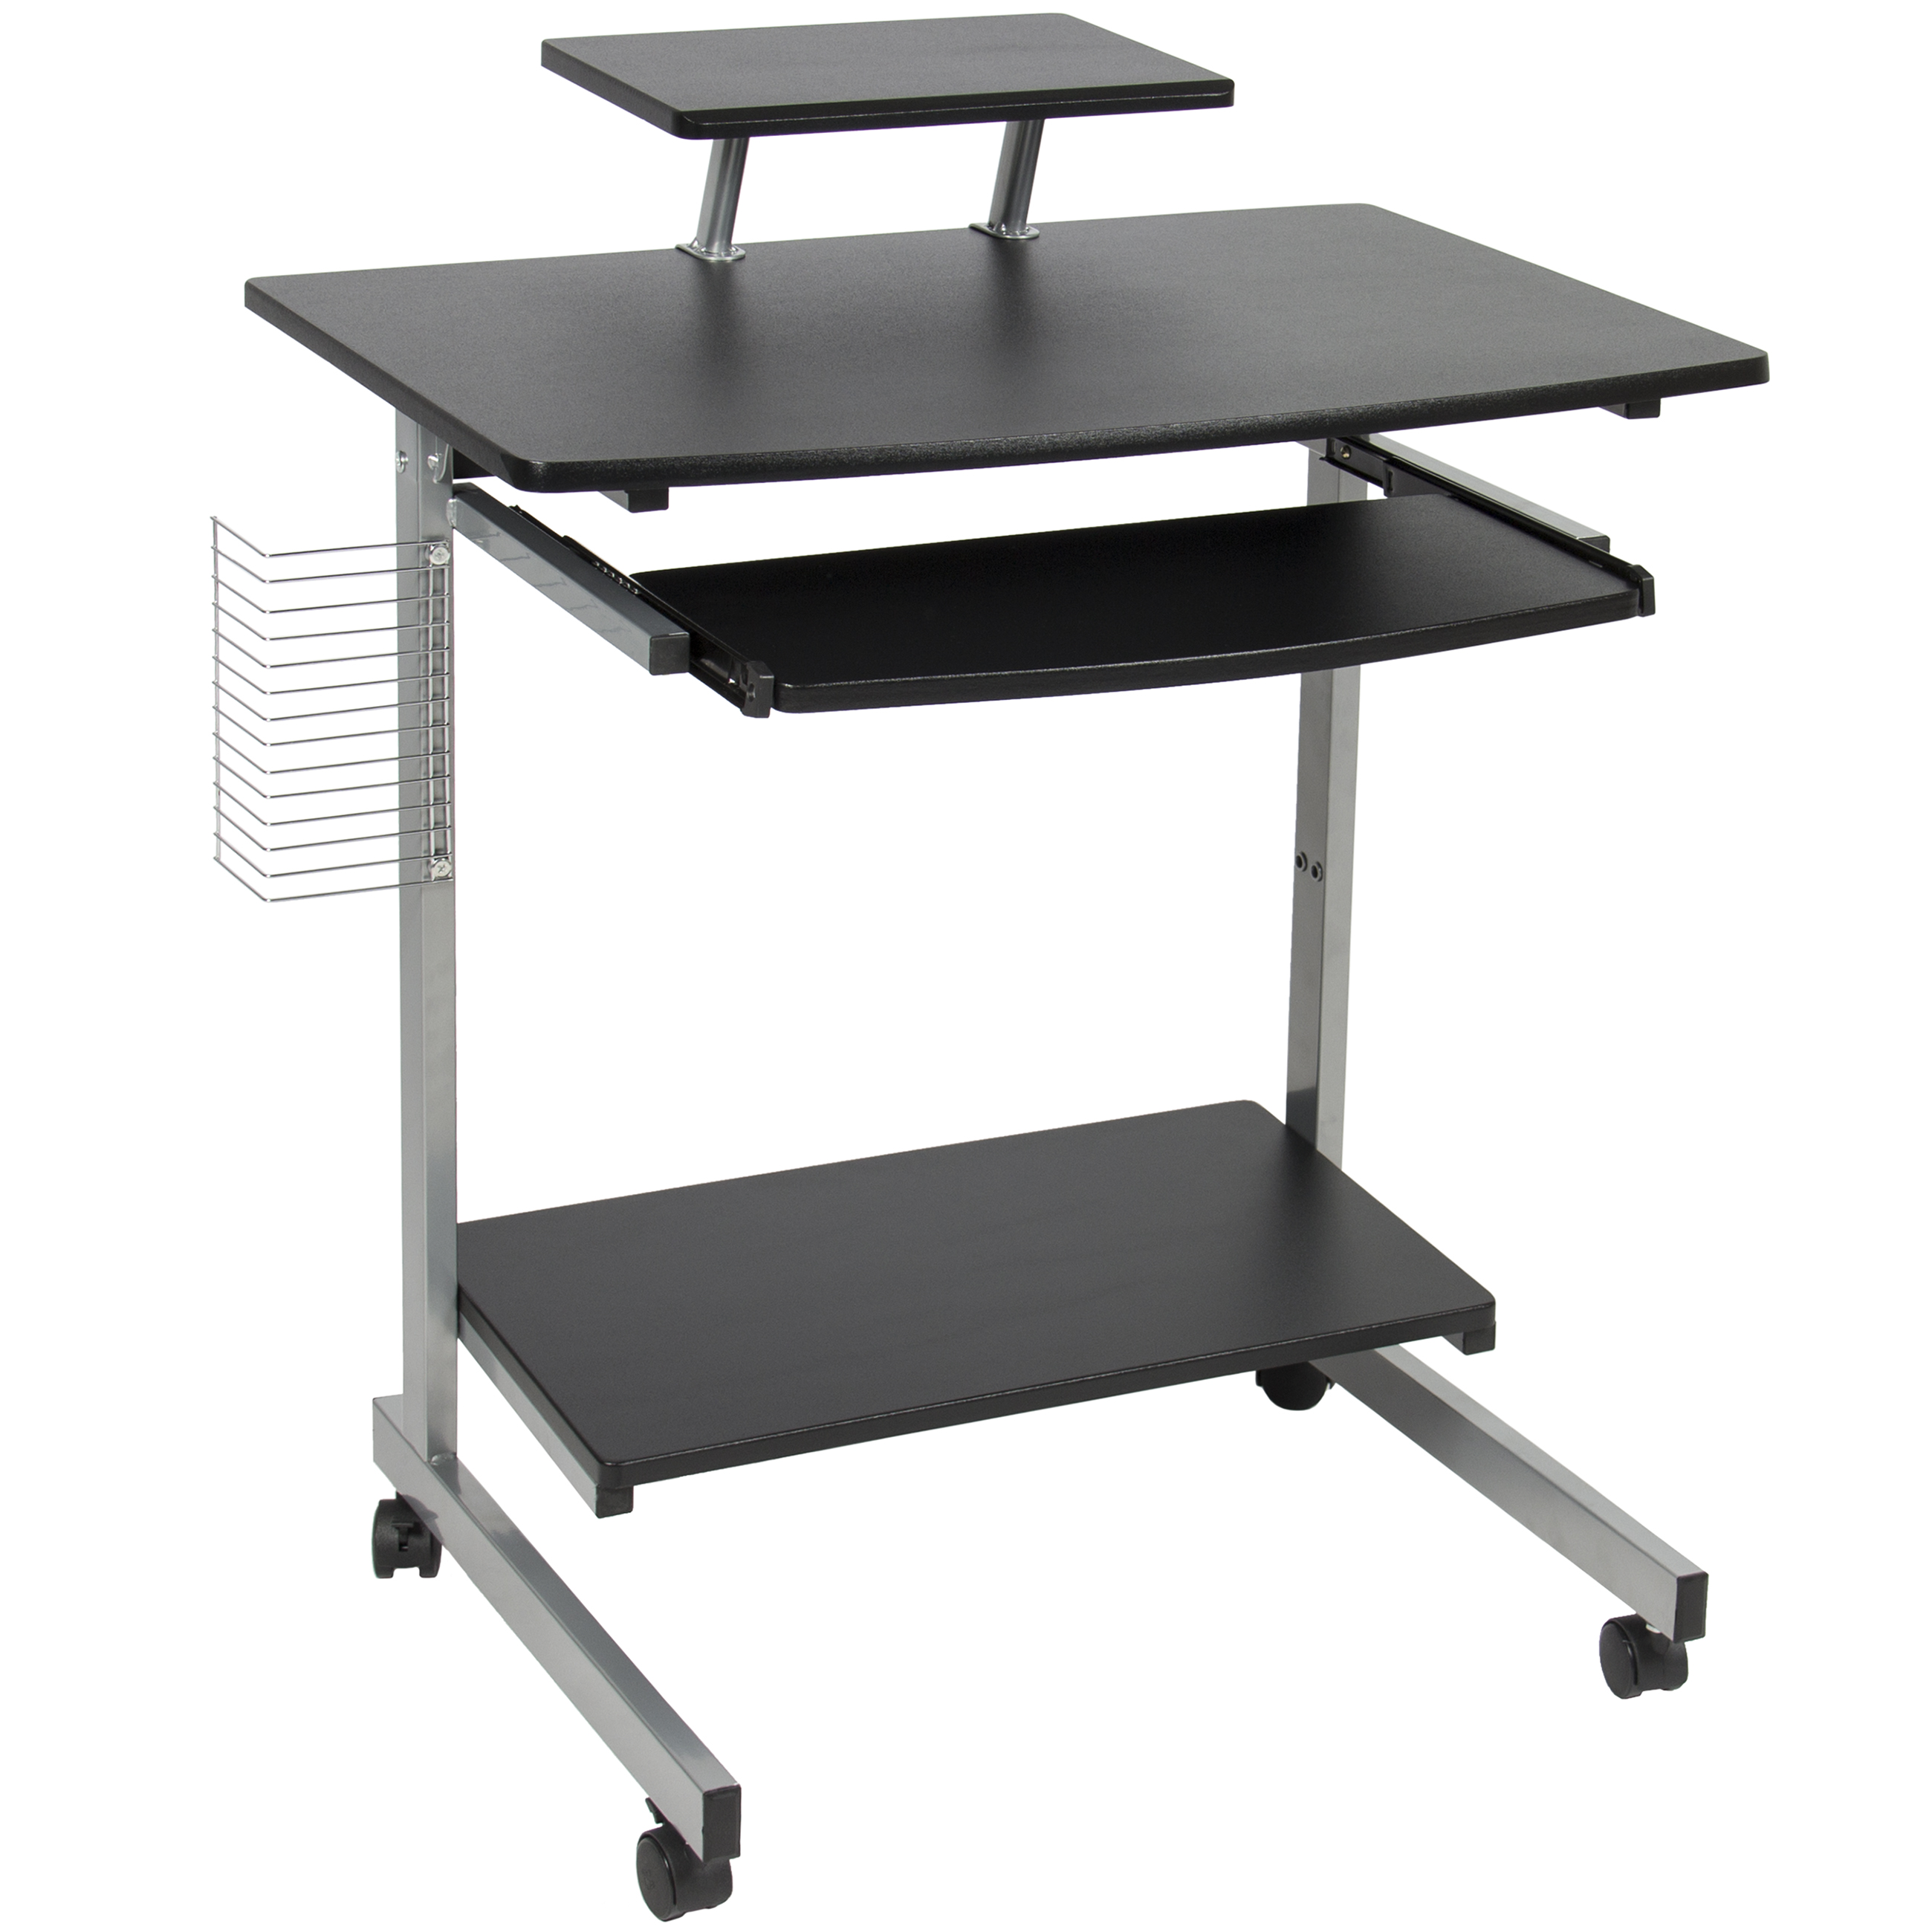 Computer Desk Cart PC Laptop Table Study Portable Workstation Student Dorm Home Office